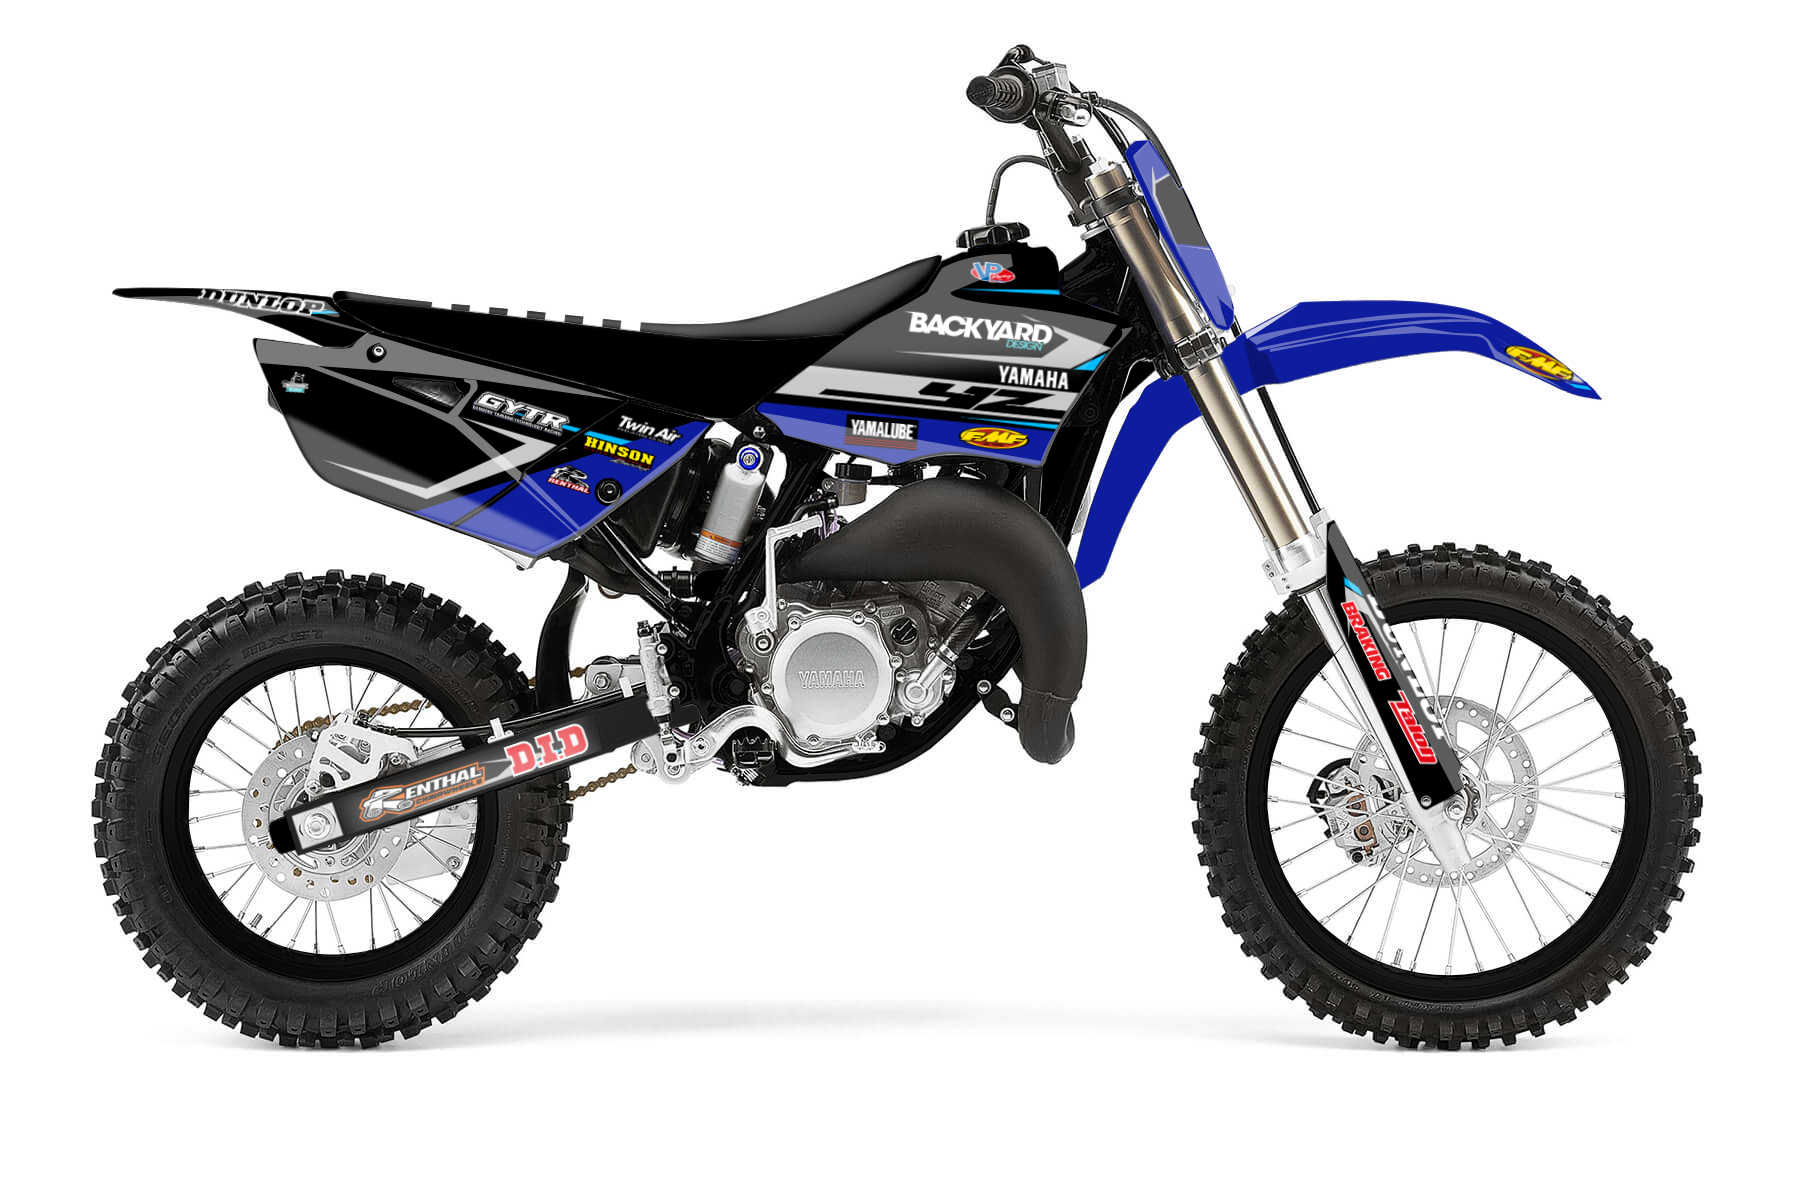 Yamaha YZ 85 MX Graphic Kits  The Yamaha YZ 85 is the perfect bike to start your career on. It is a trustworthy partner on the way to your first wins on the track. A light frame and enough power is all you need.